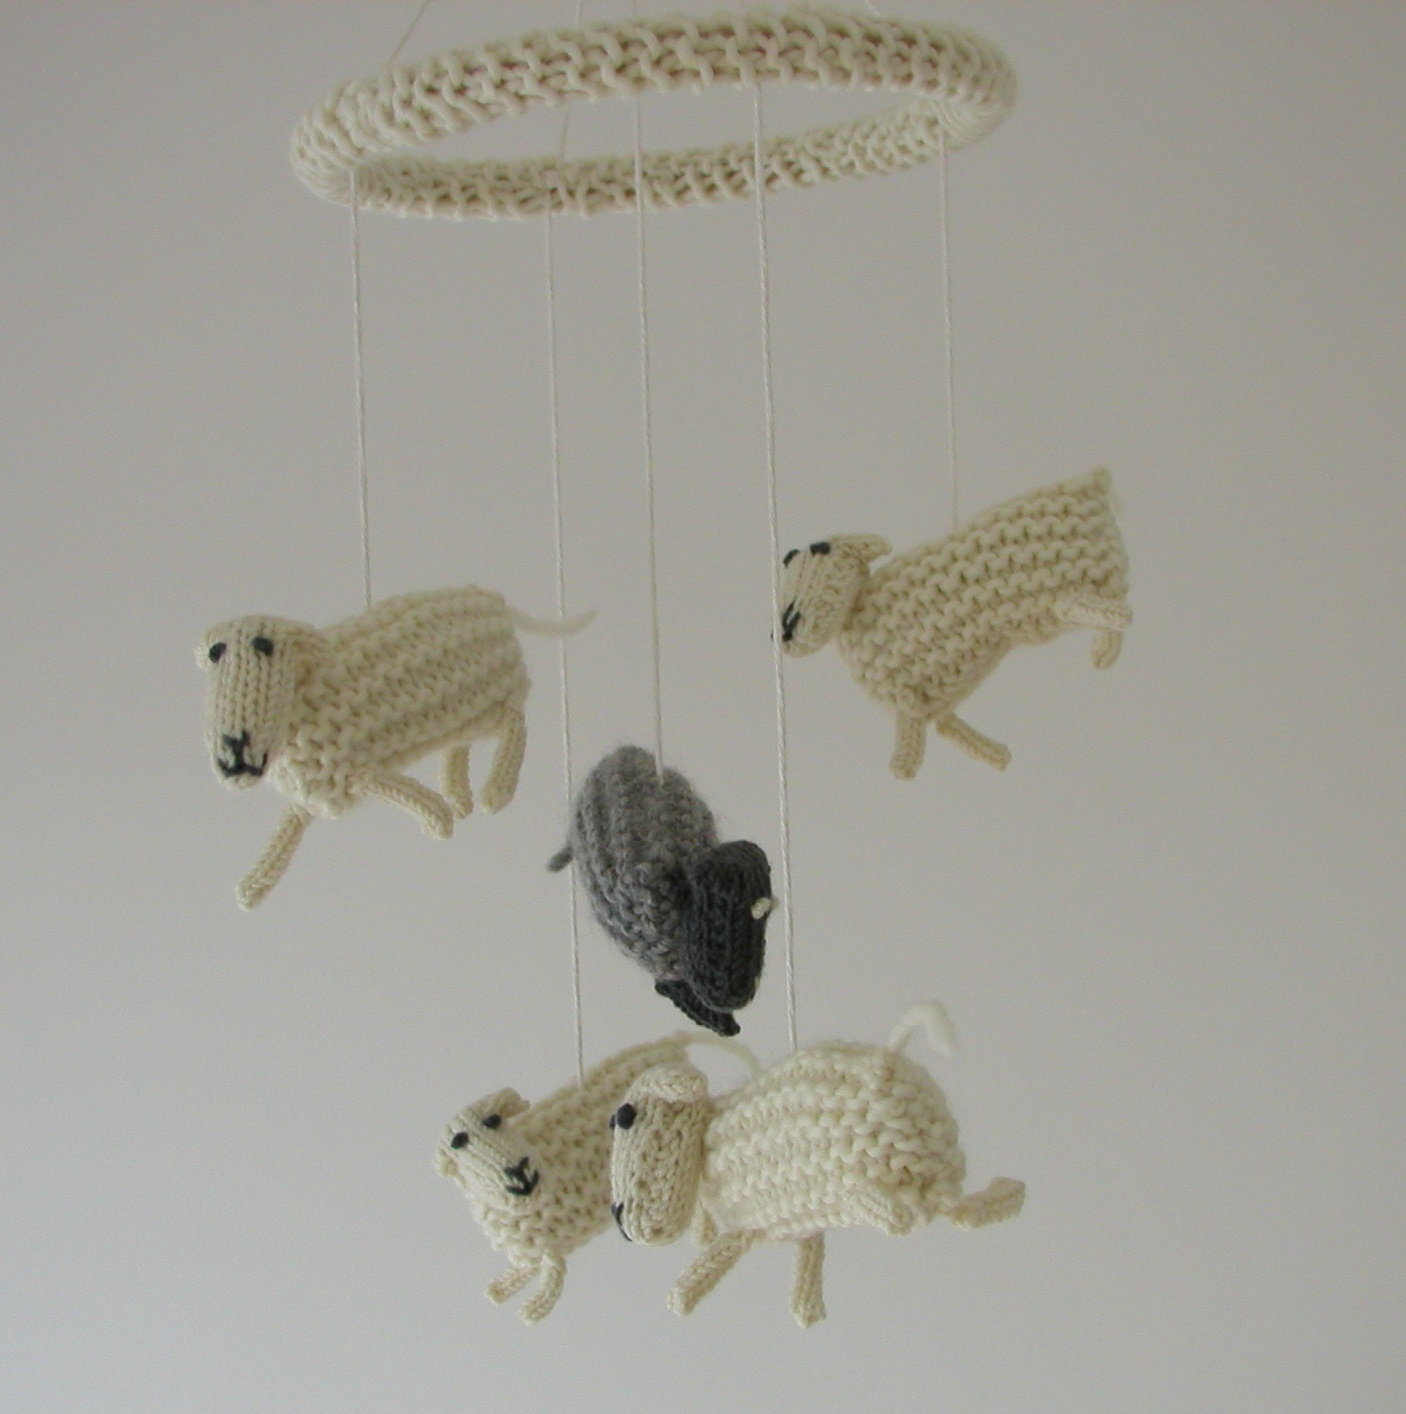 Sheep Knitting Pattern Free Download : Hand Knitted Things: Counting Sheep Mobile Free Download